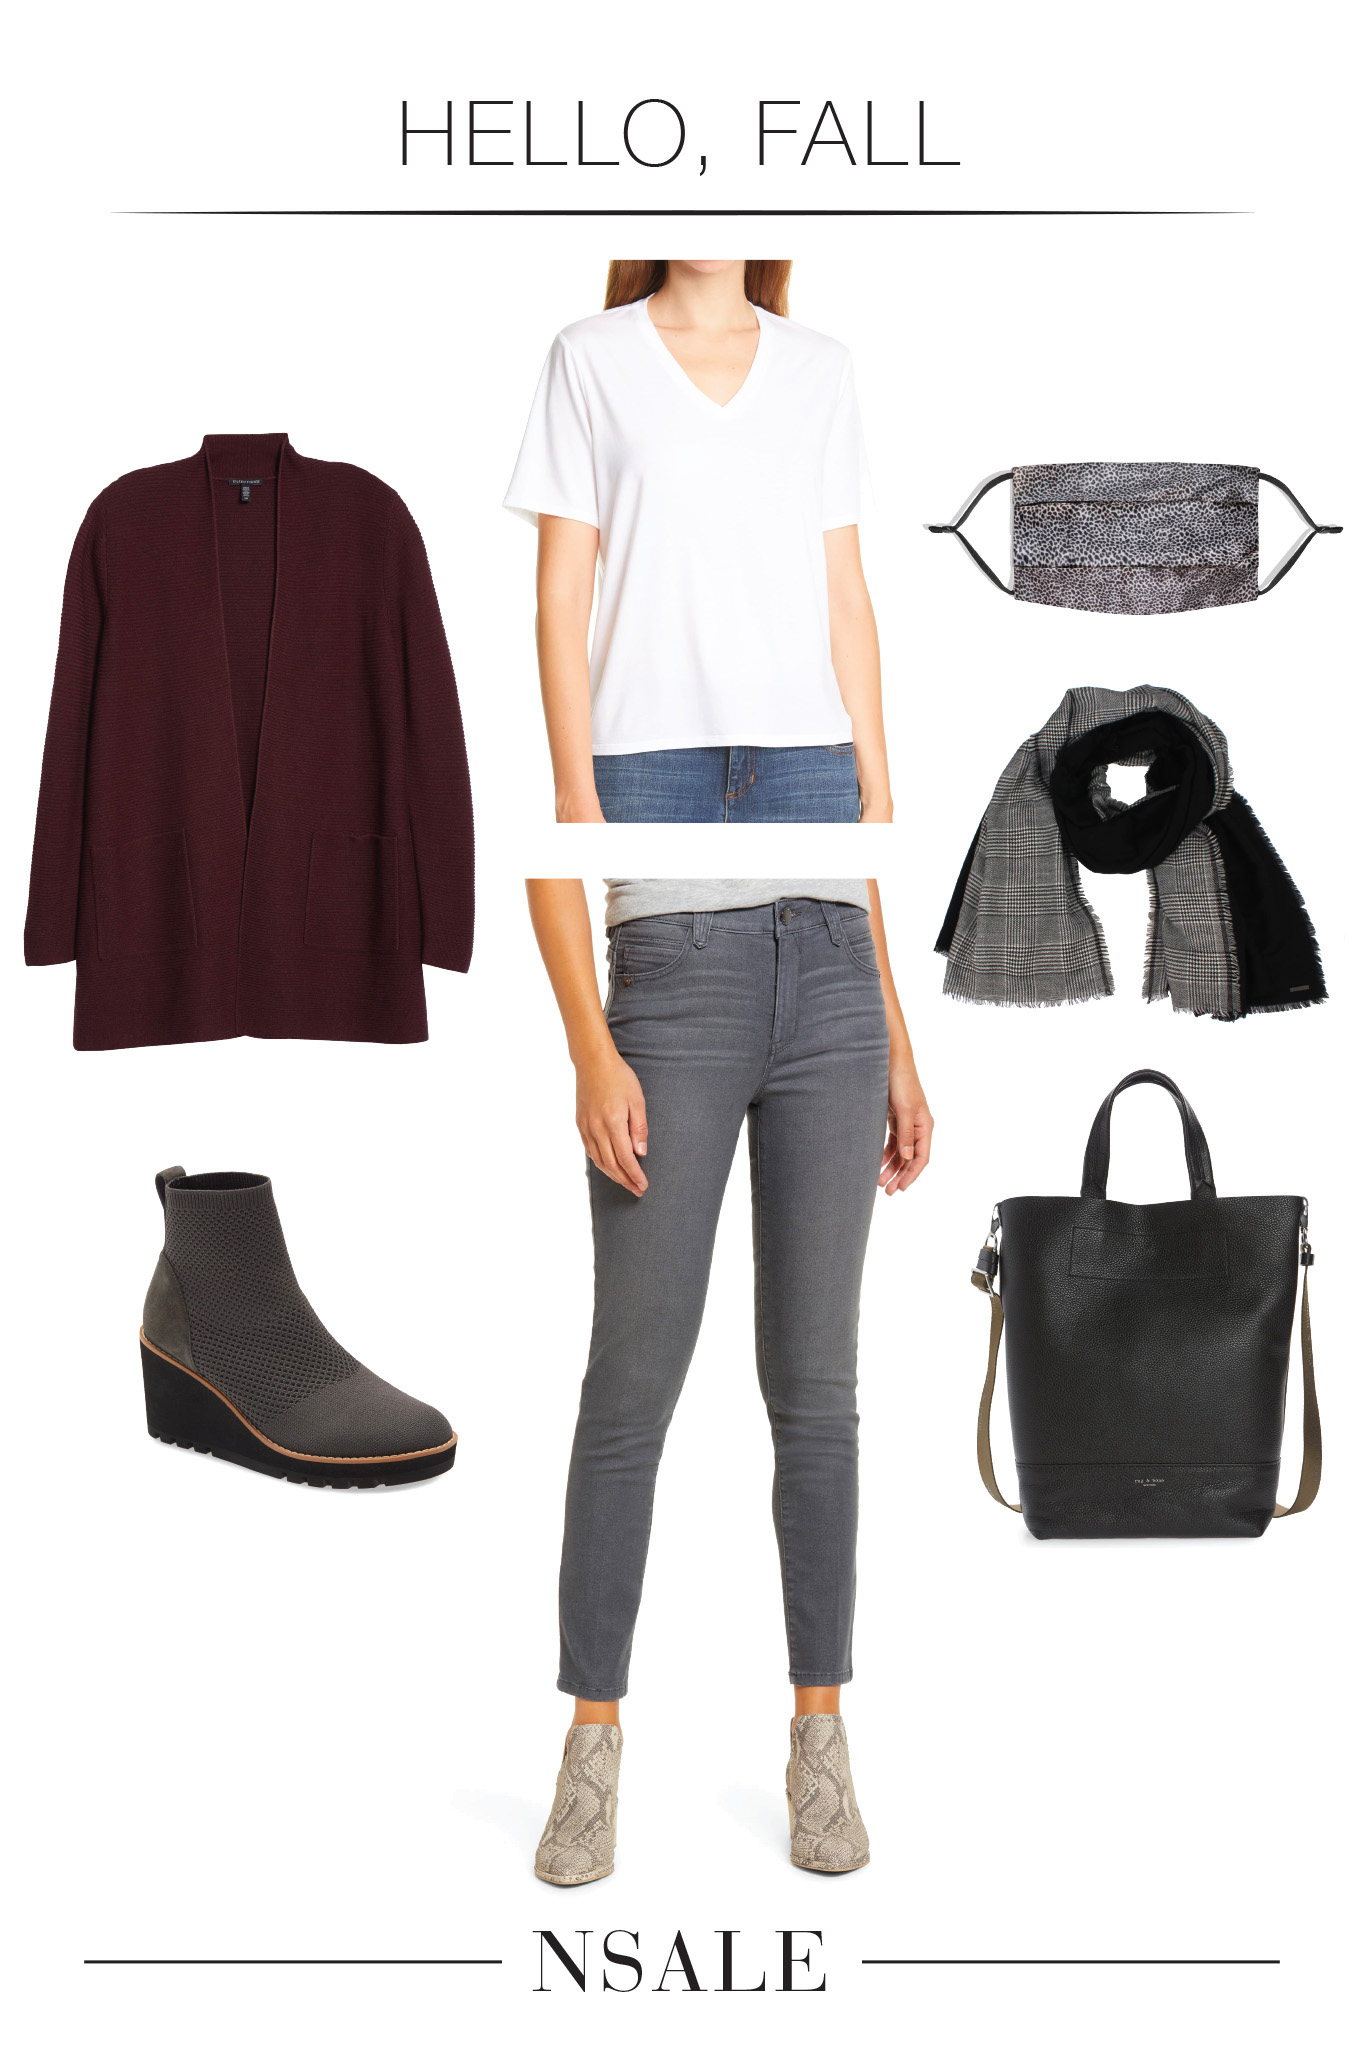 A higher quality cardigan (silk + cashmere) w/ plus-size available. Add cute EILEEN FISHER booties & an eco-conscious v-neck tee...these are major deals.